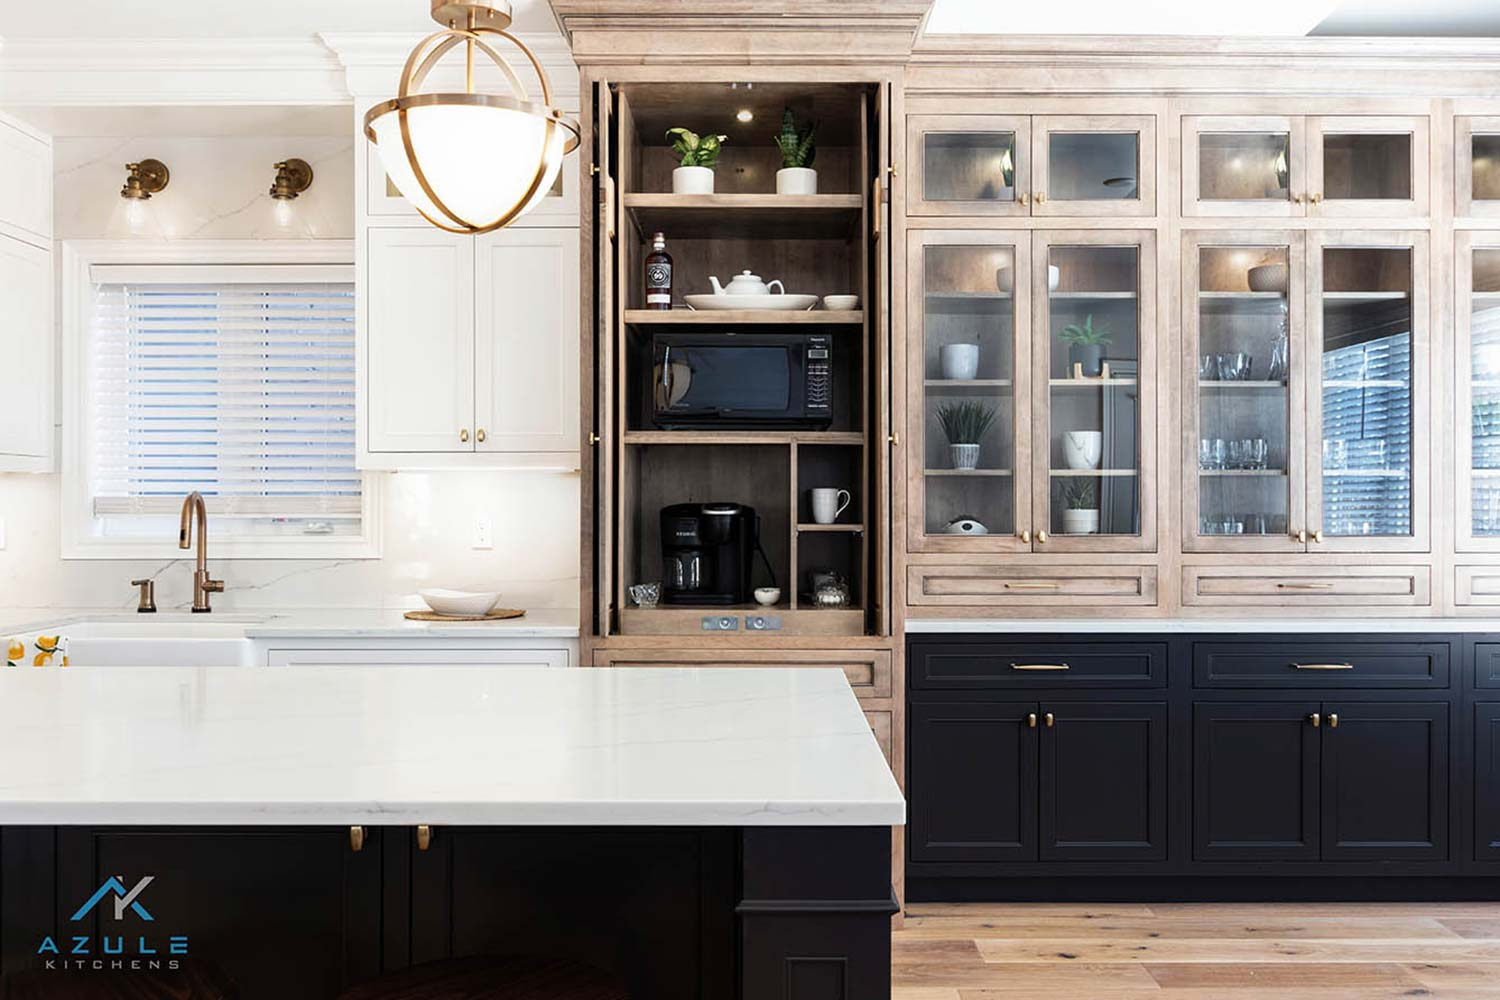 Azule Kitchens -How to Style Glass Kitchen Cabinets?